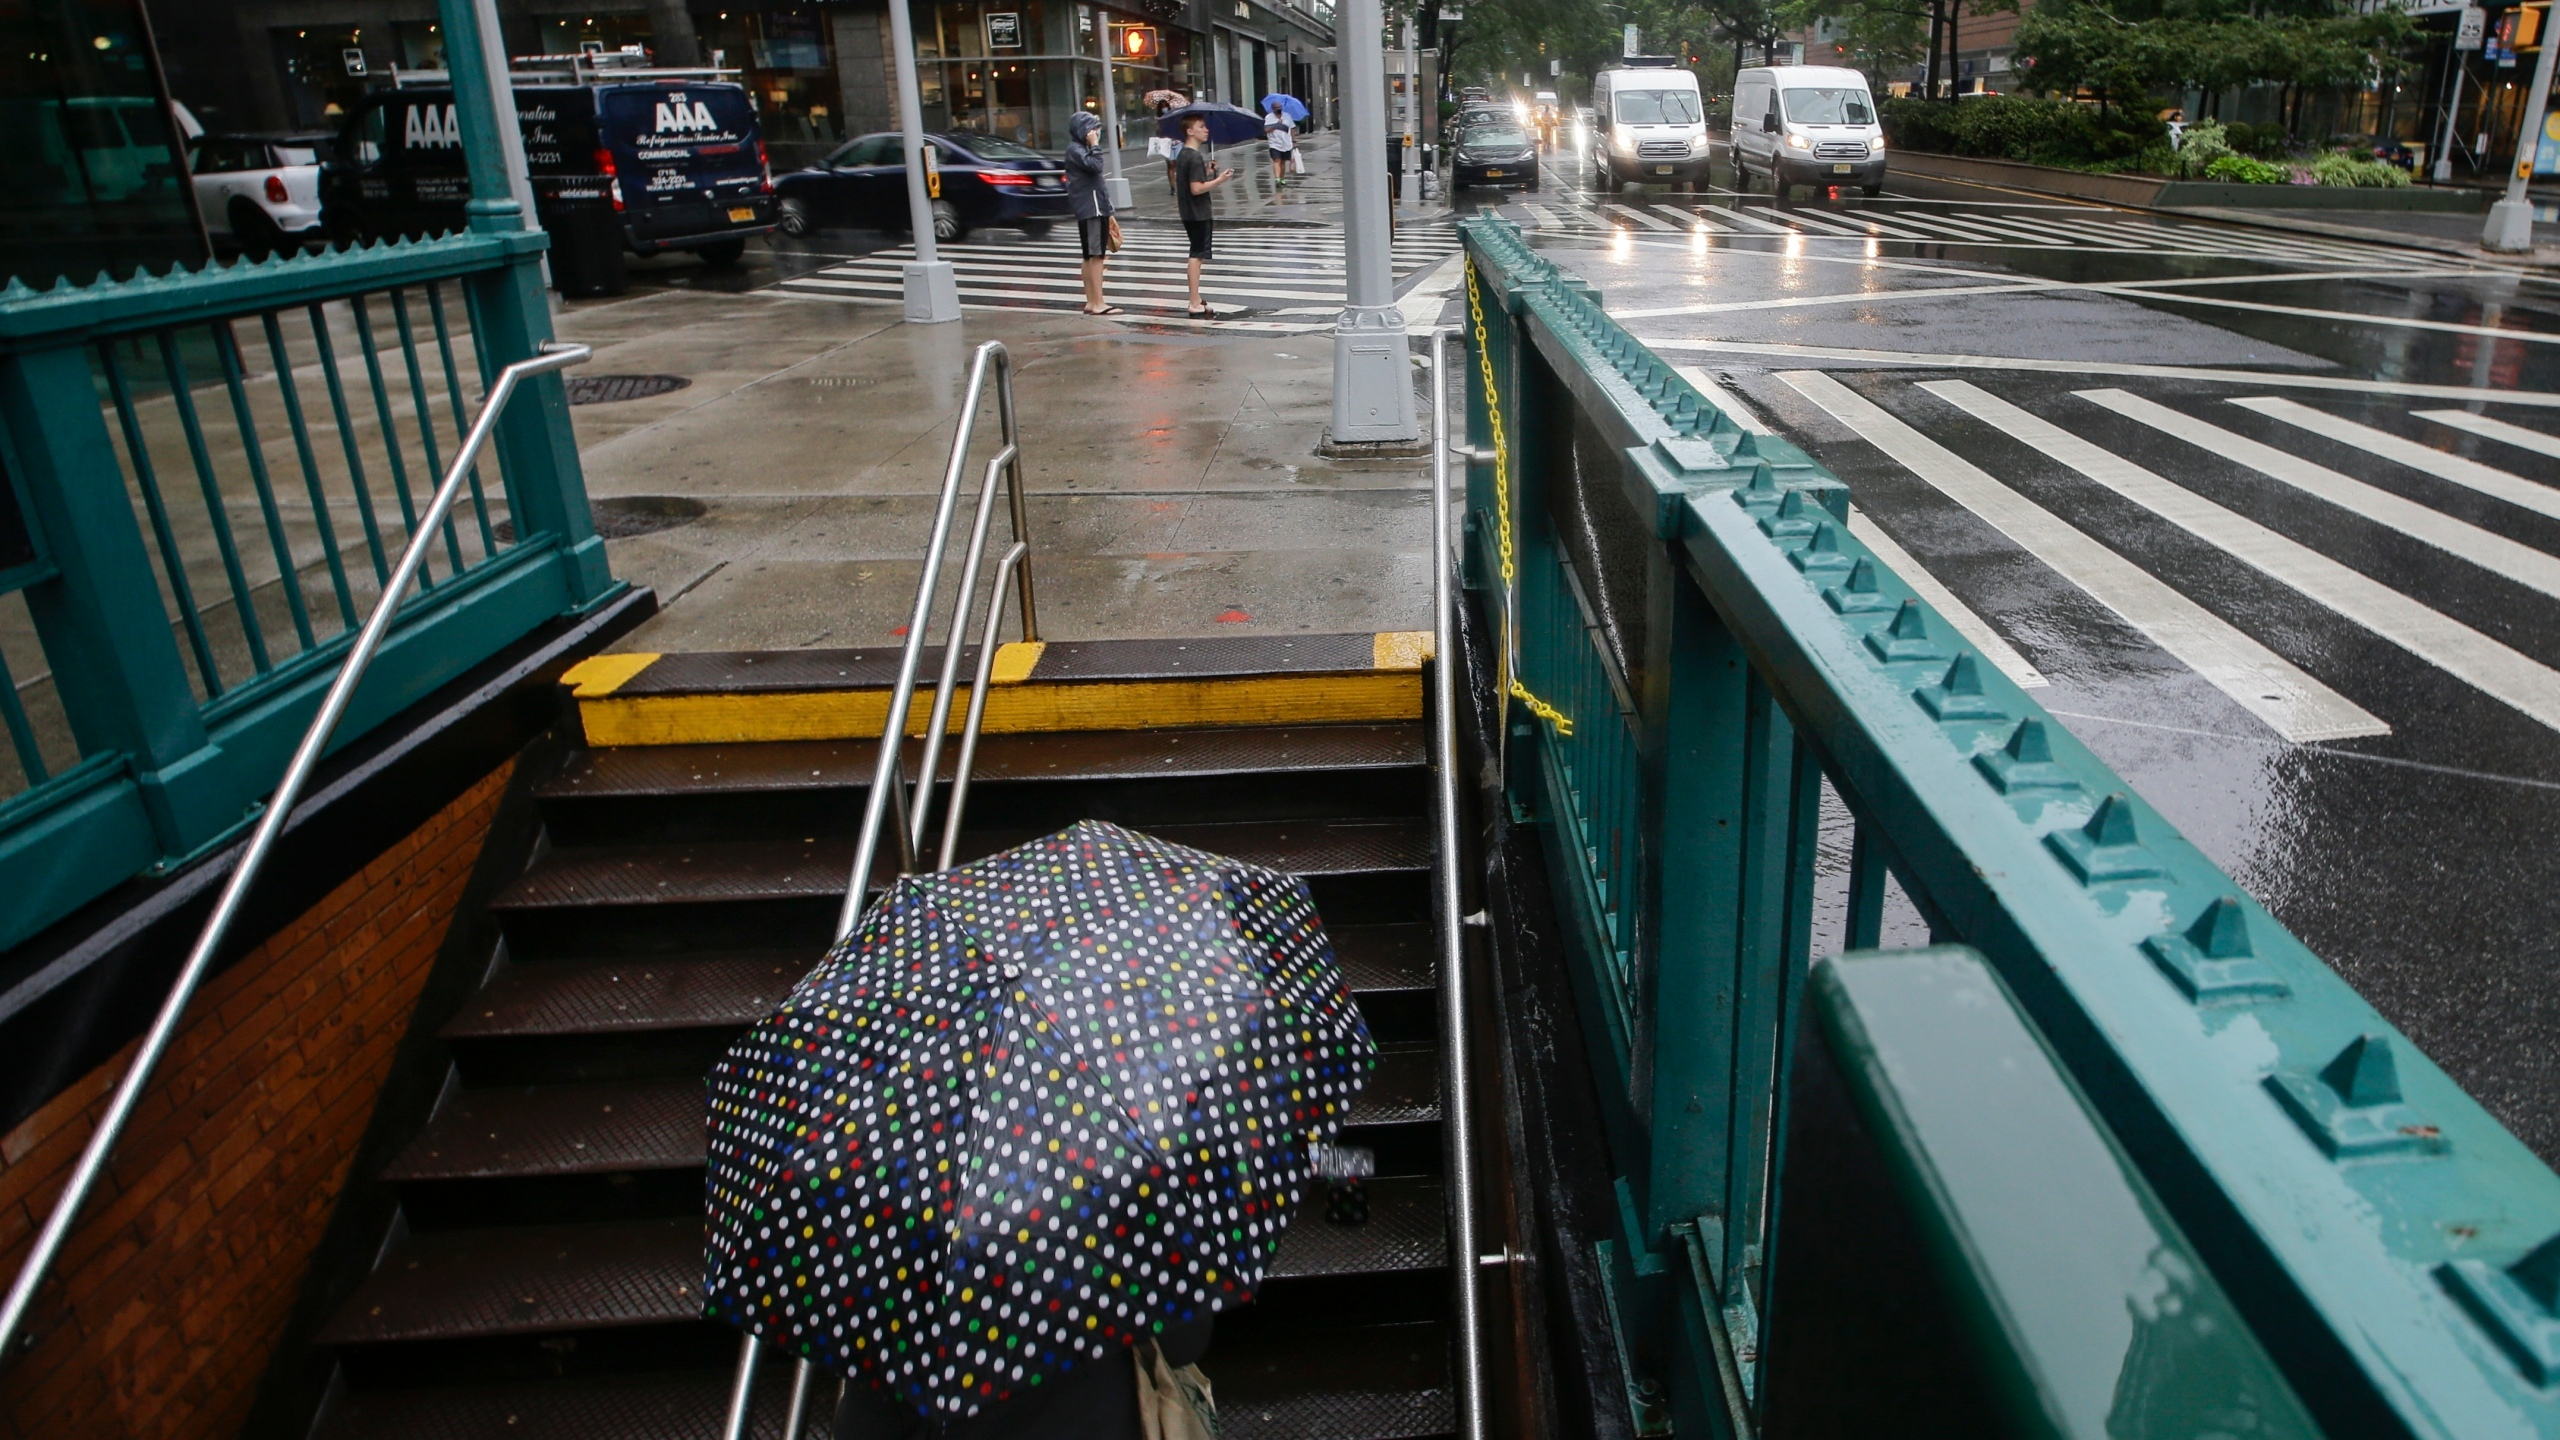 Rain dampens nyc subway stairs as person with umbrella walks